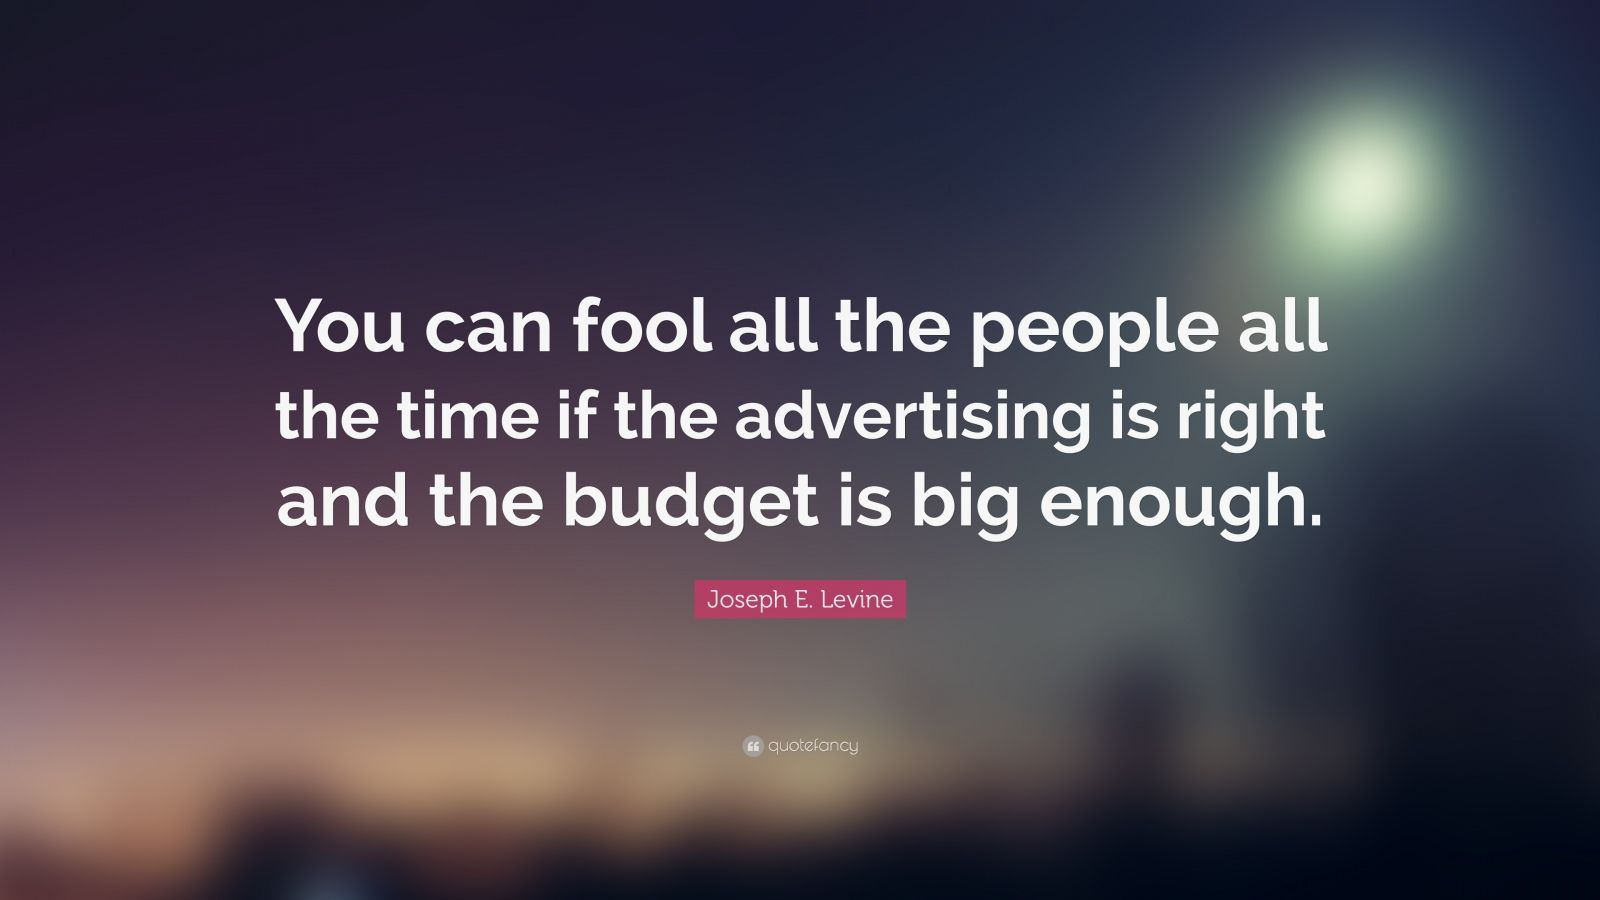 """Joseph E. Levine Quote: """"You can fool all the people all the time if the advertising is right and the budget is big enough."""""""